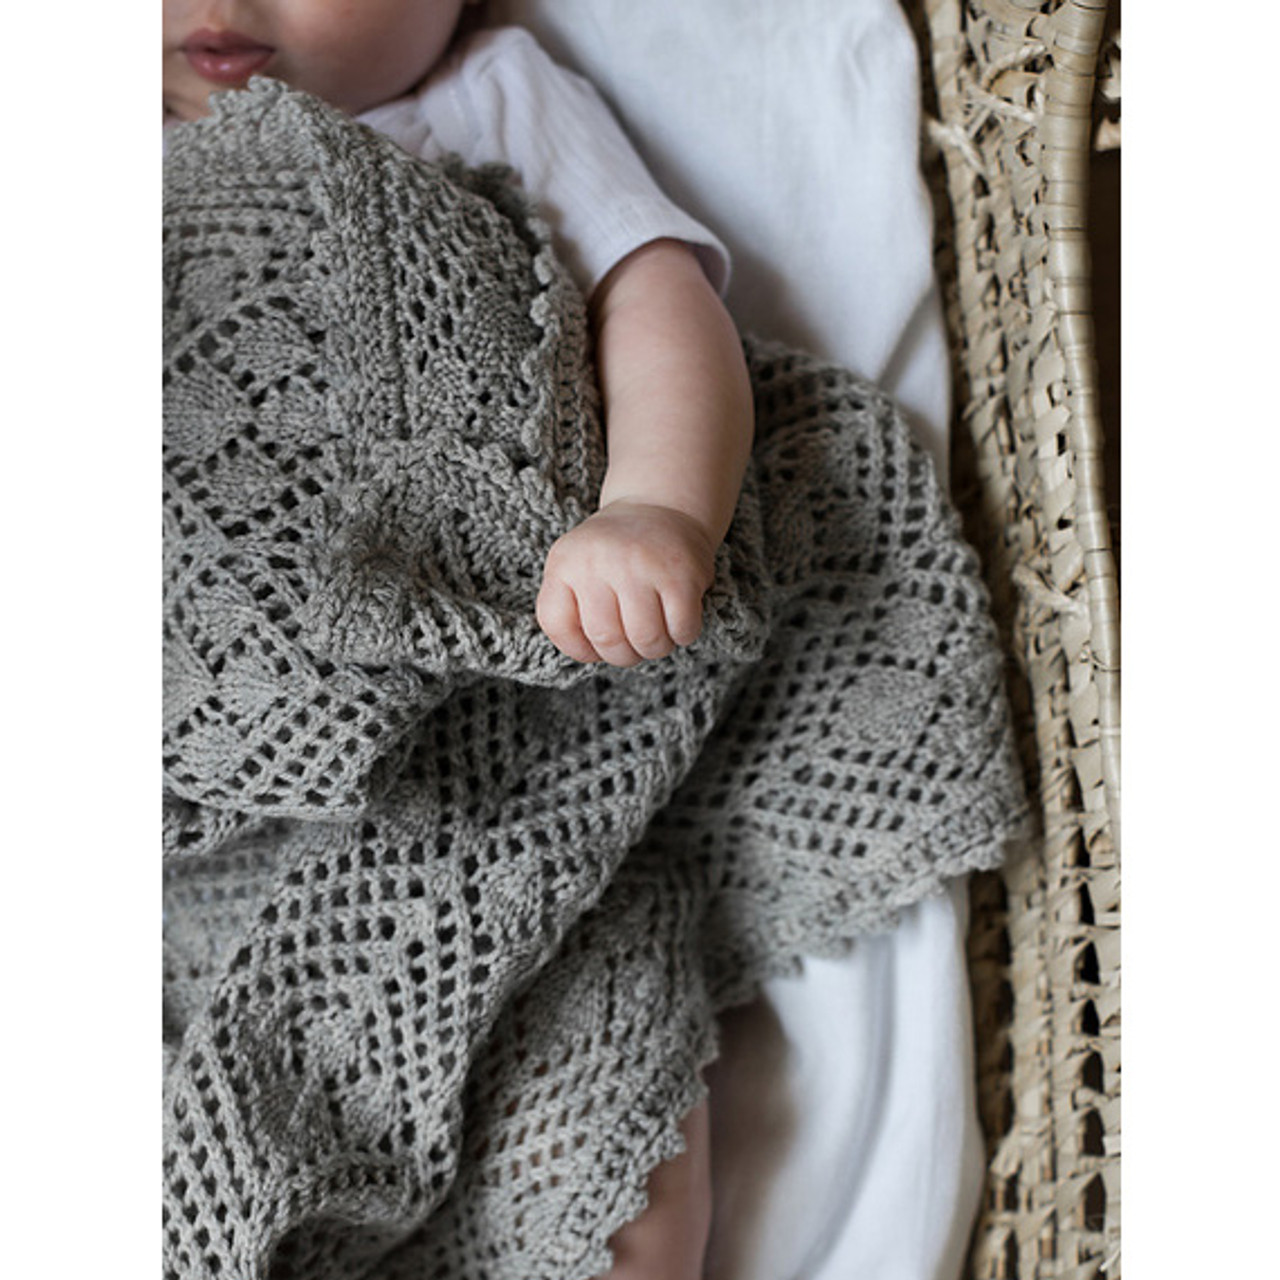 Camarose Leaf Fall Baby Blanket Knitting Pattern